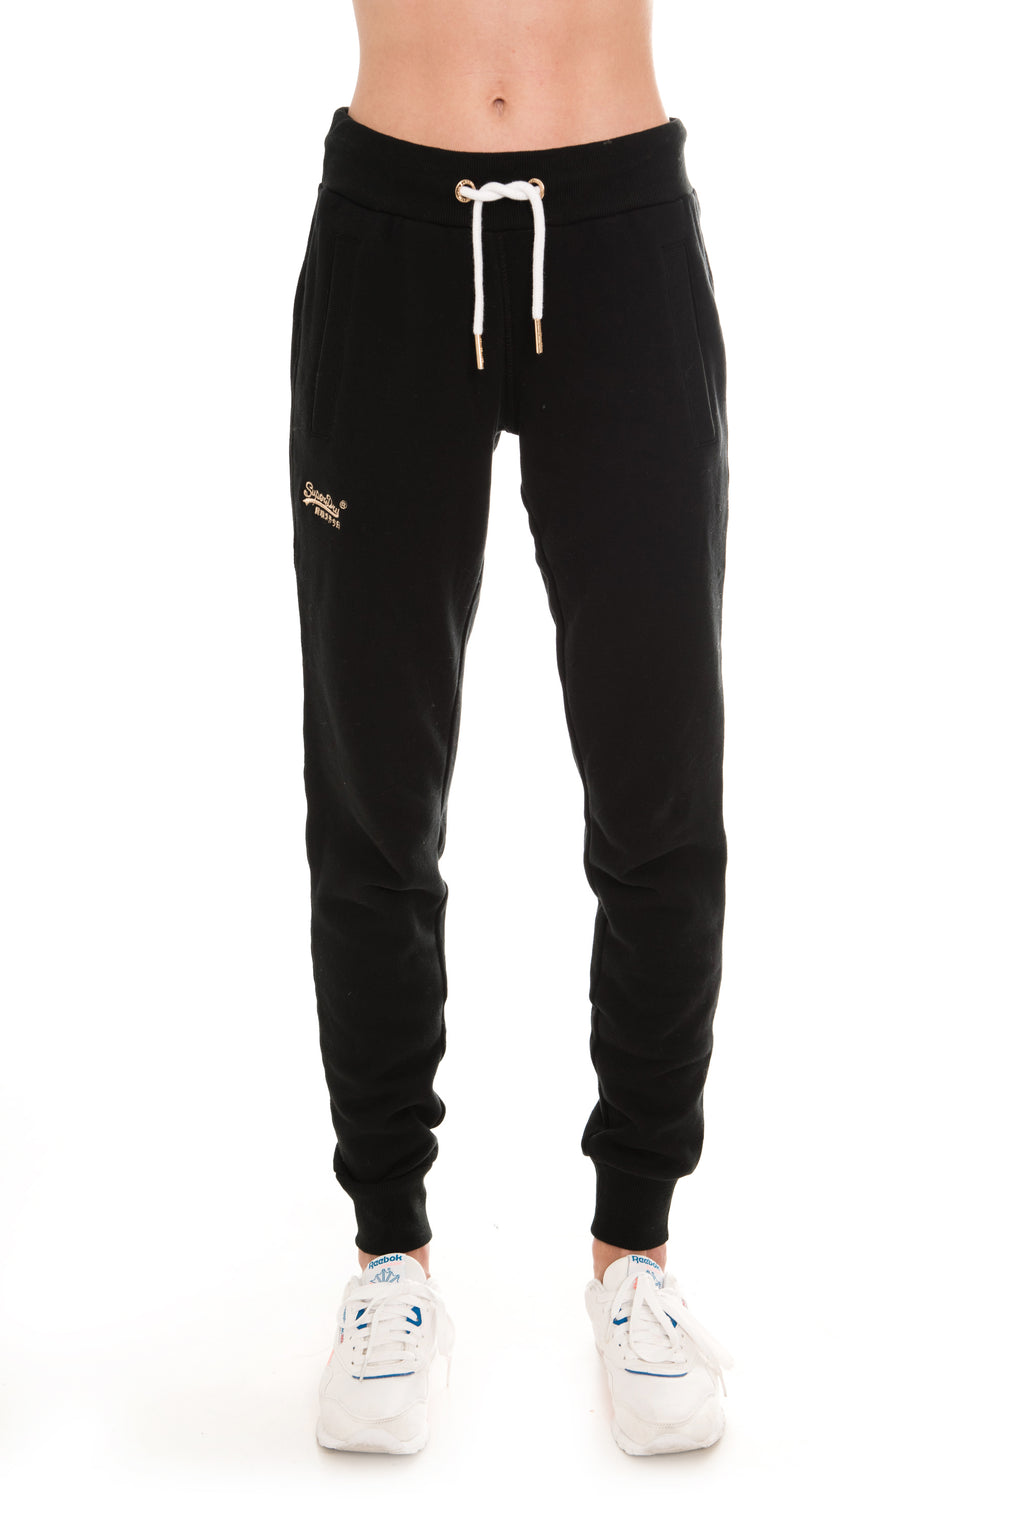 SUPERDRY ORANGE LABEL ELITE JOGGERS - BLACK